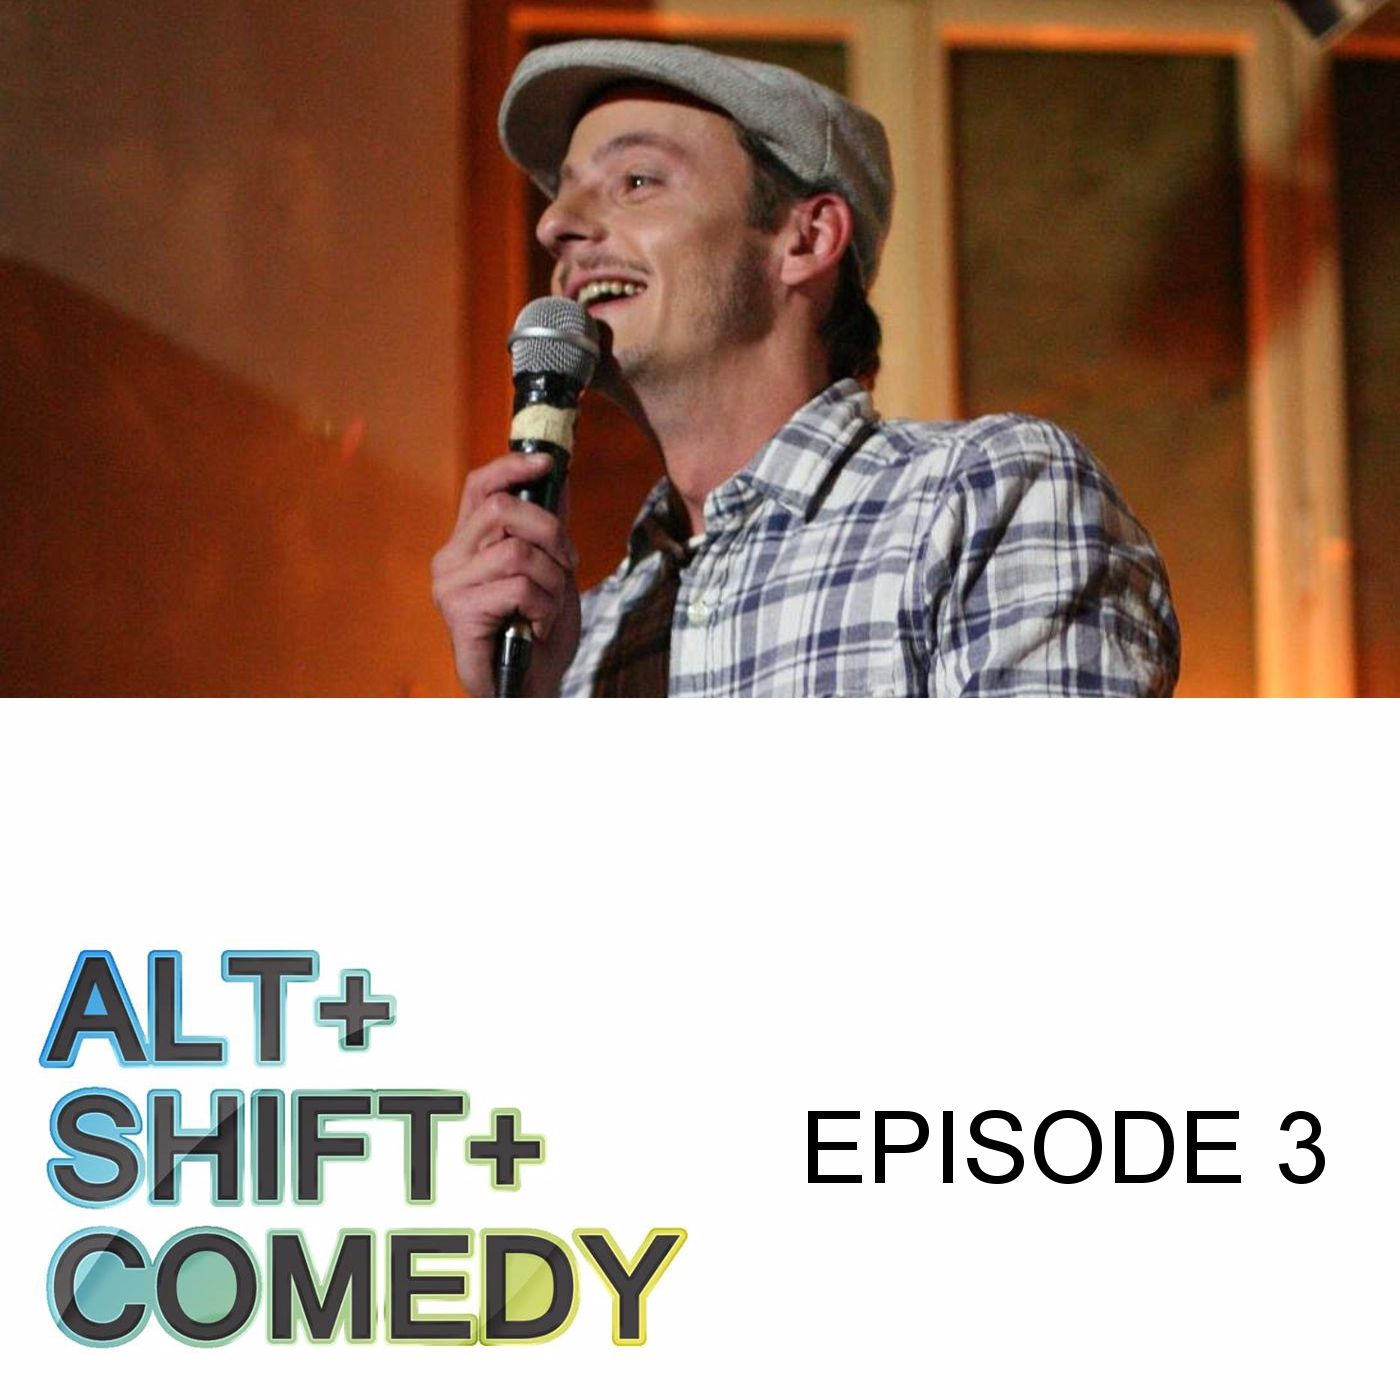 Alt Shift Comedy